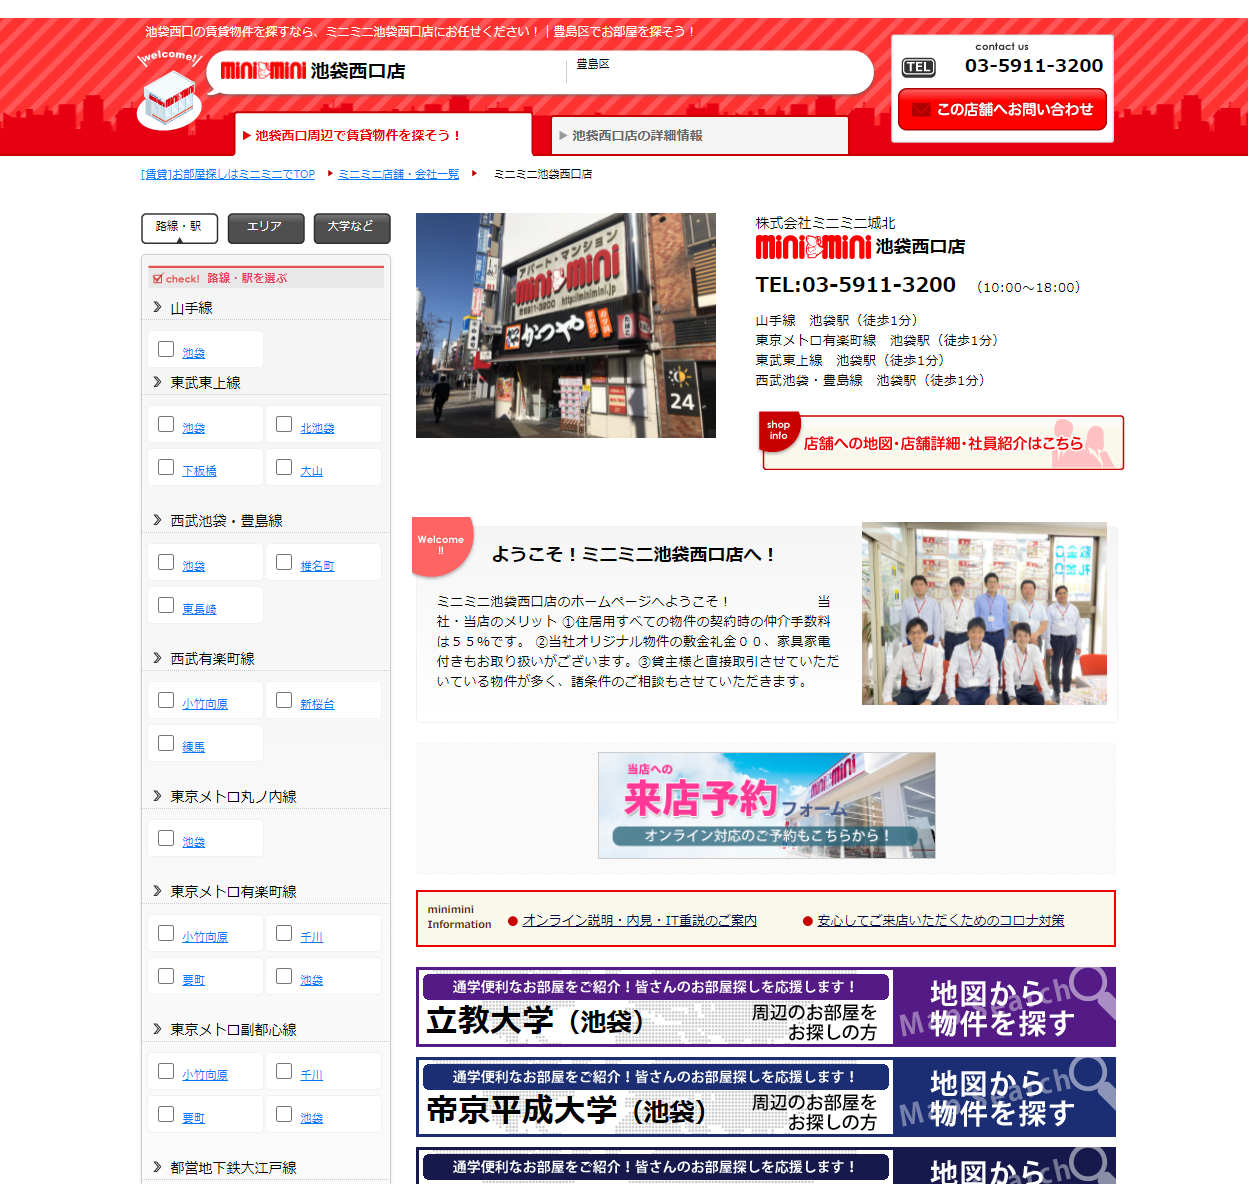 """<span class=""""title"""">ミニミニ池袋西口店の口コミや評判</span>"""